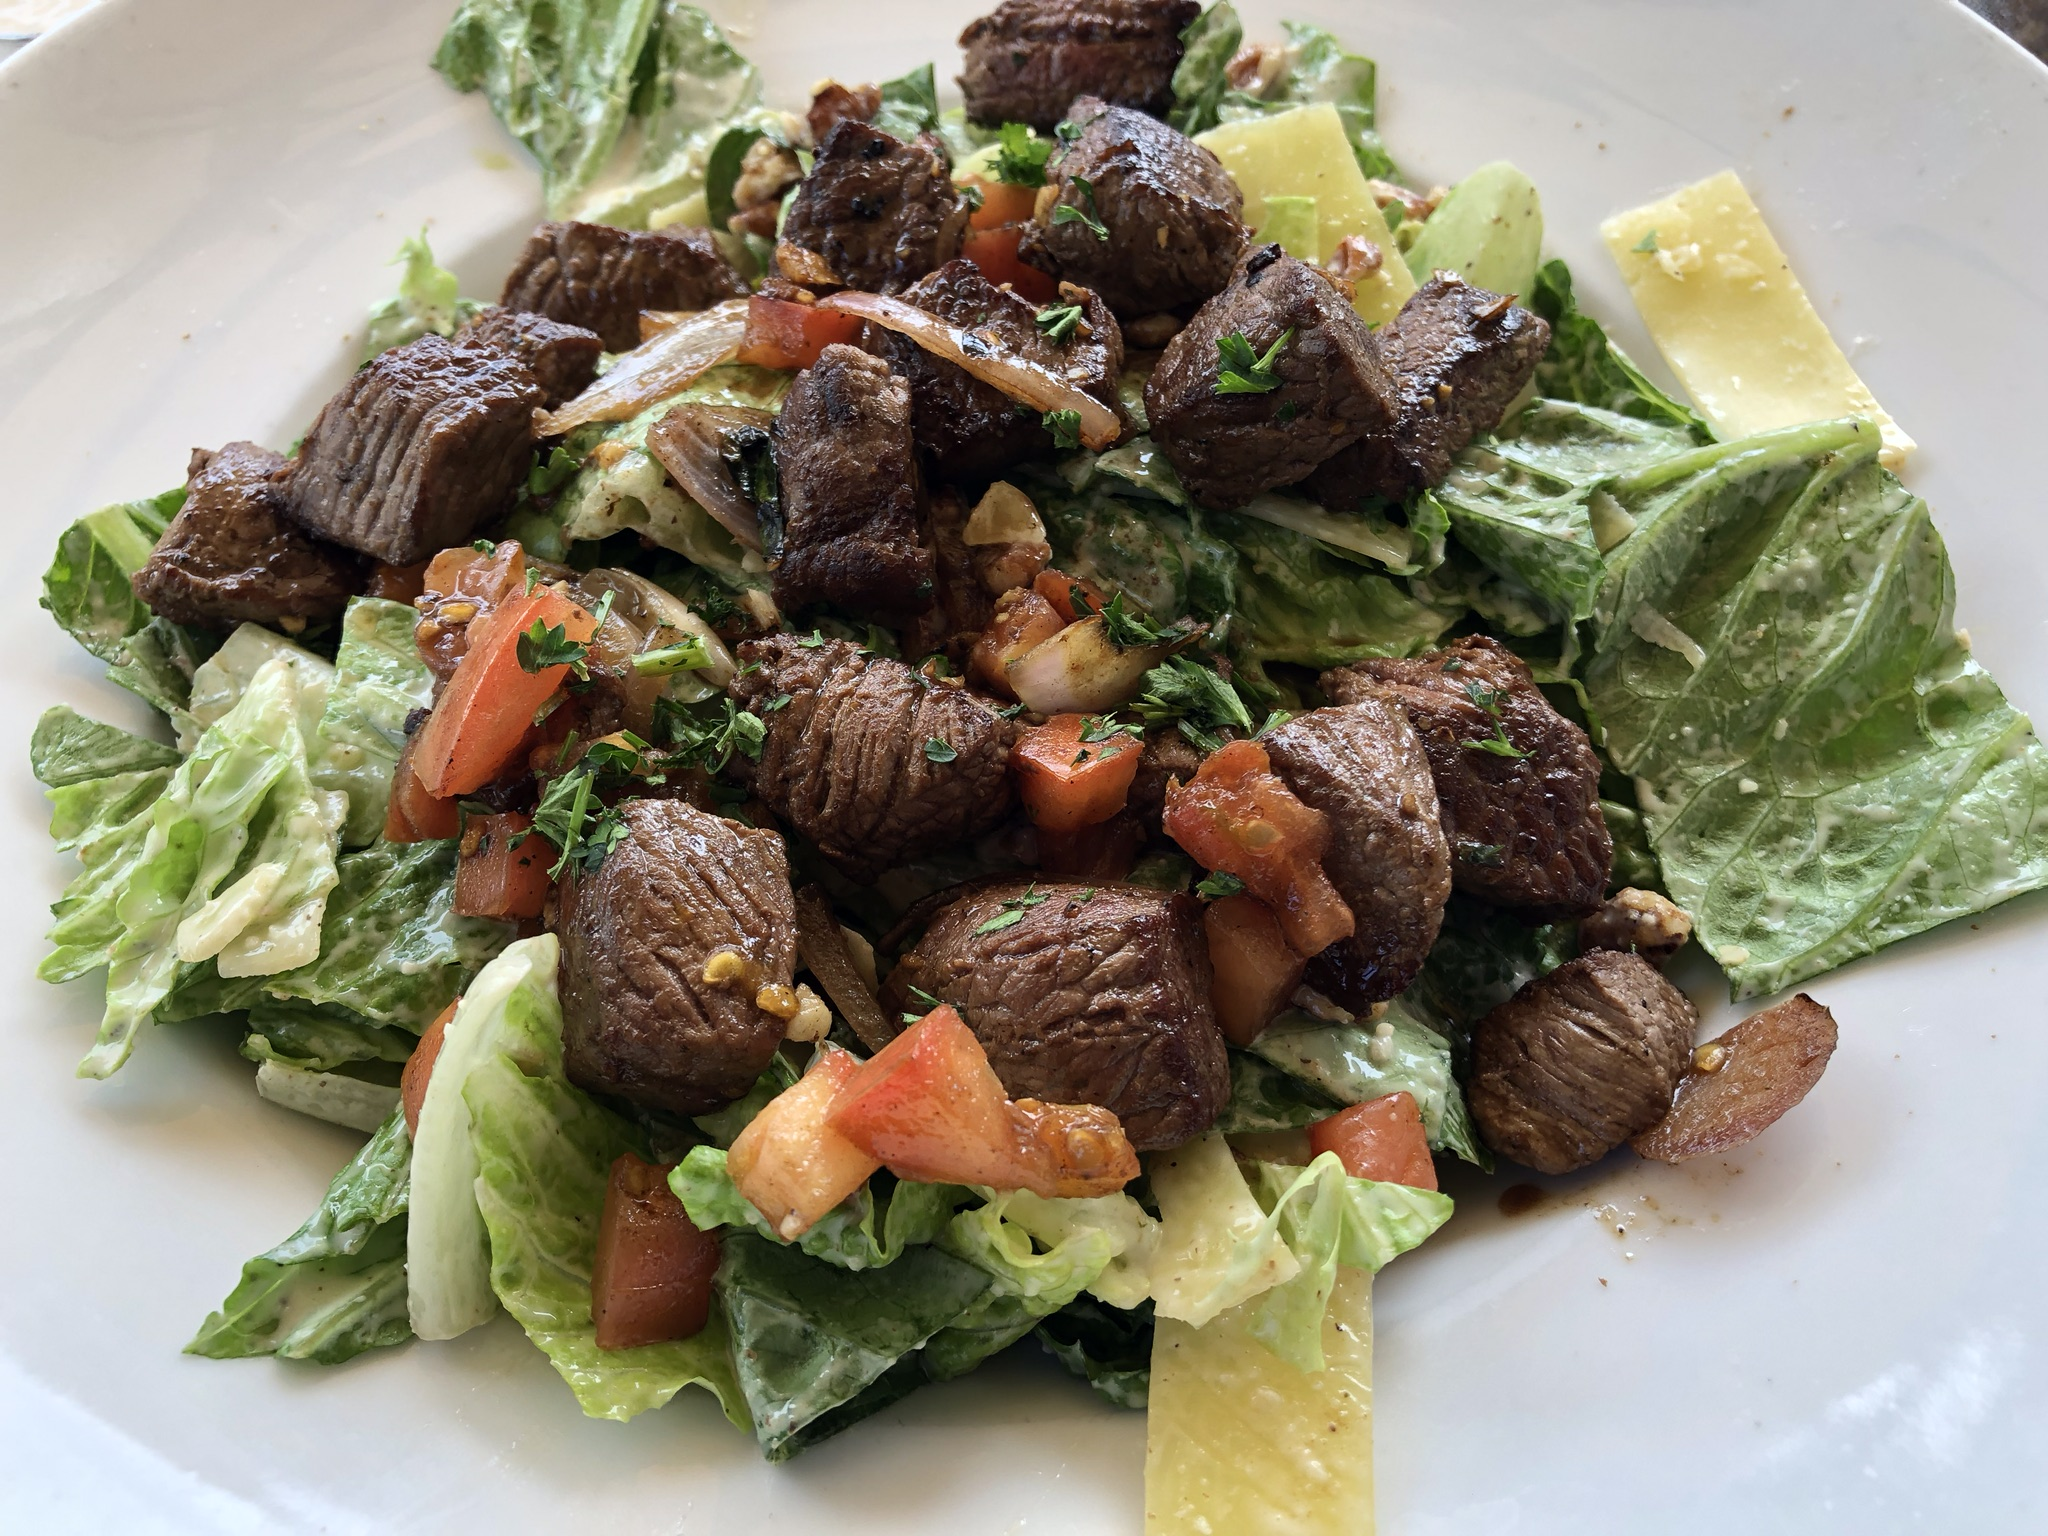 Salads at Twigs Bistro in Kennewick – May 23 2019